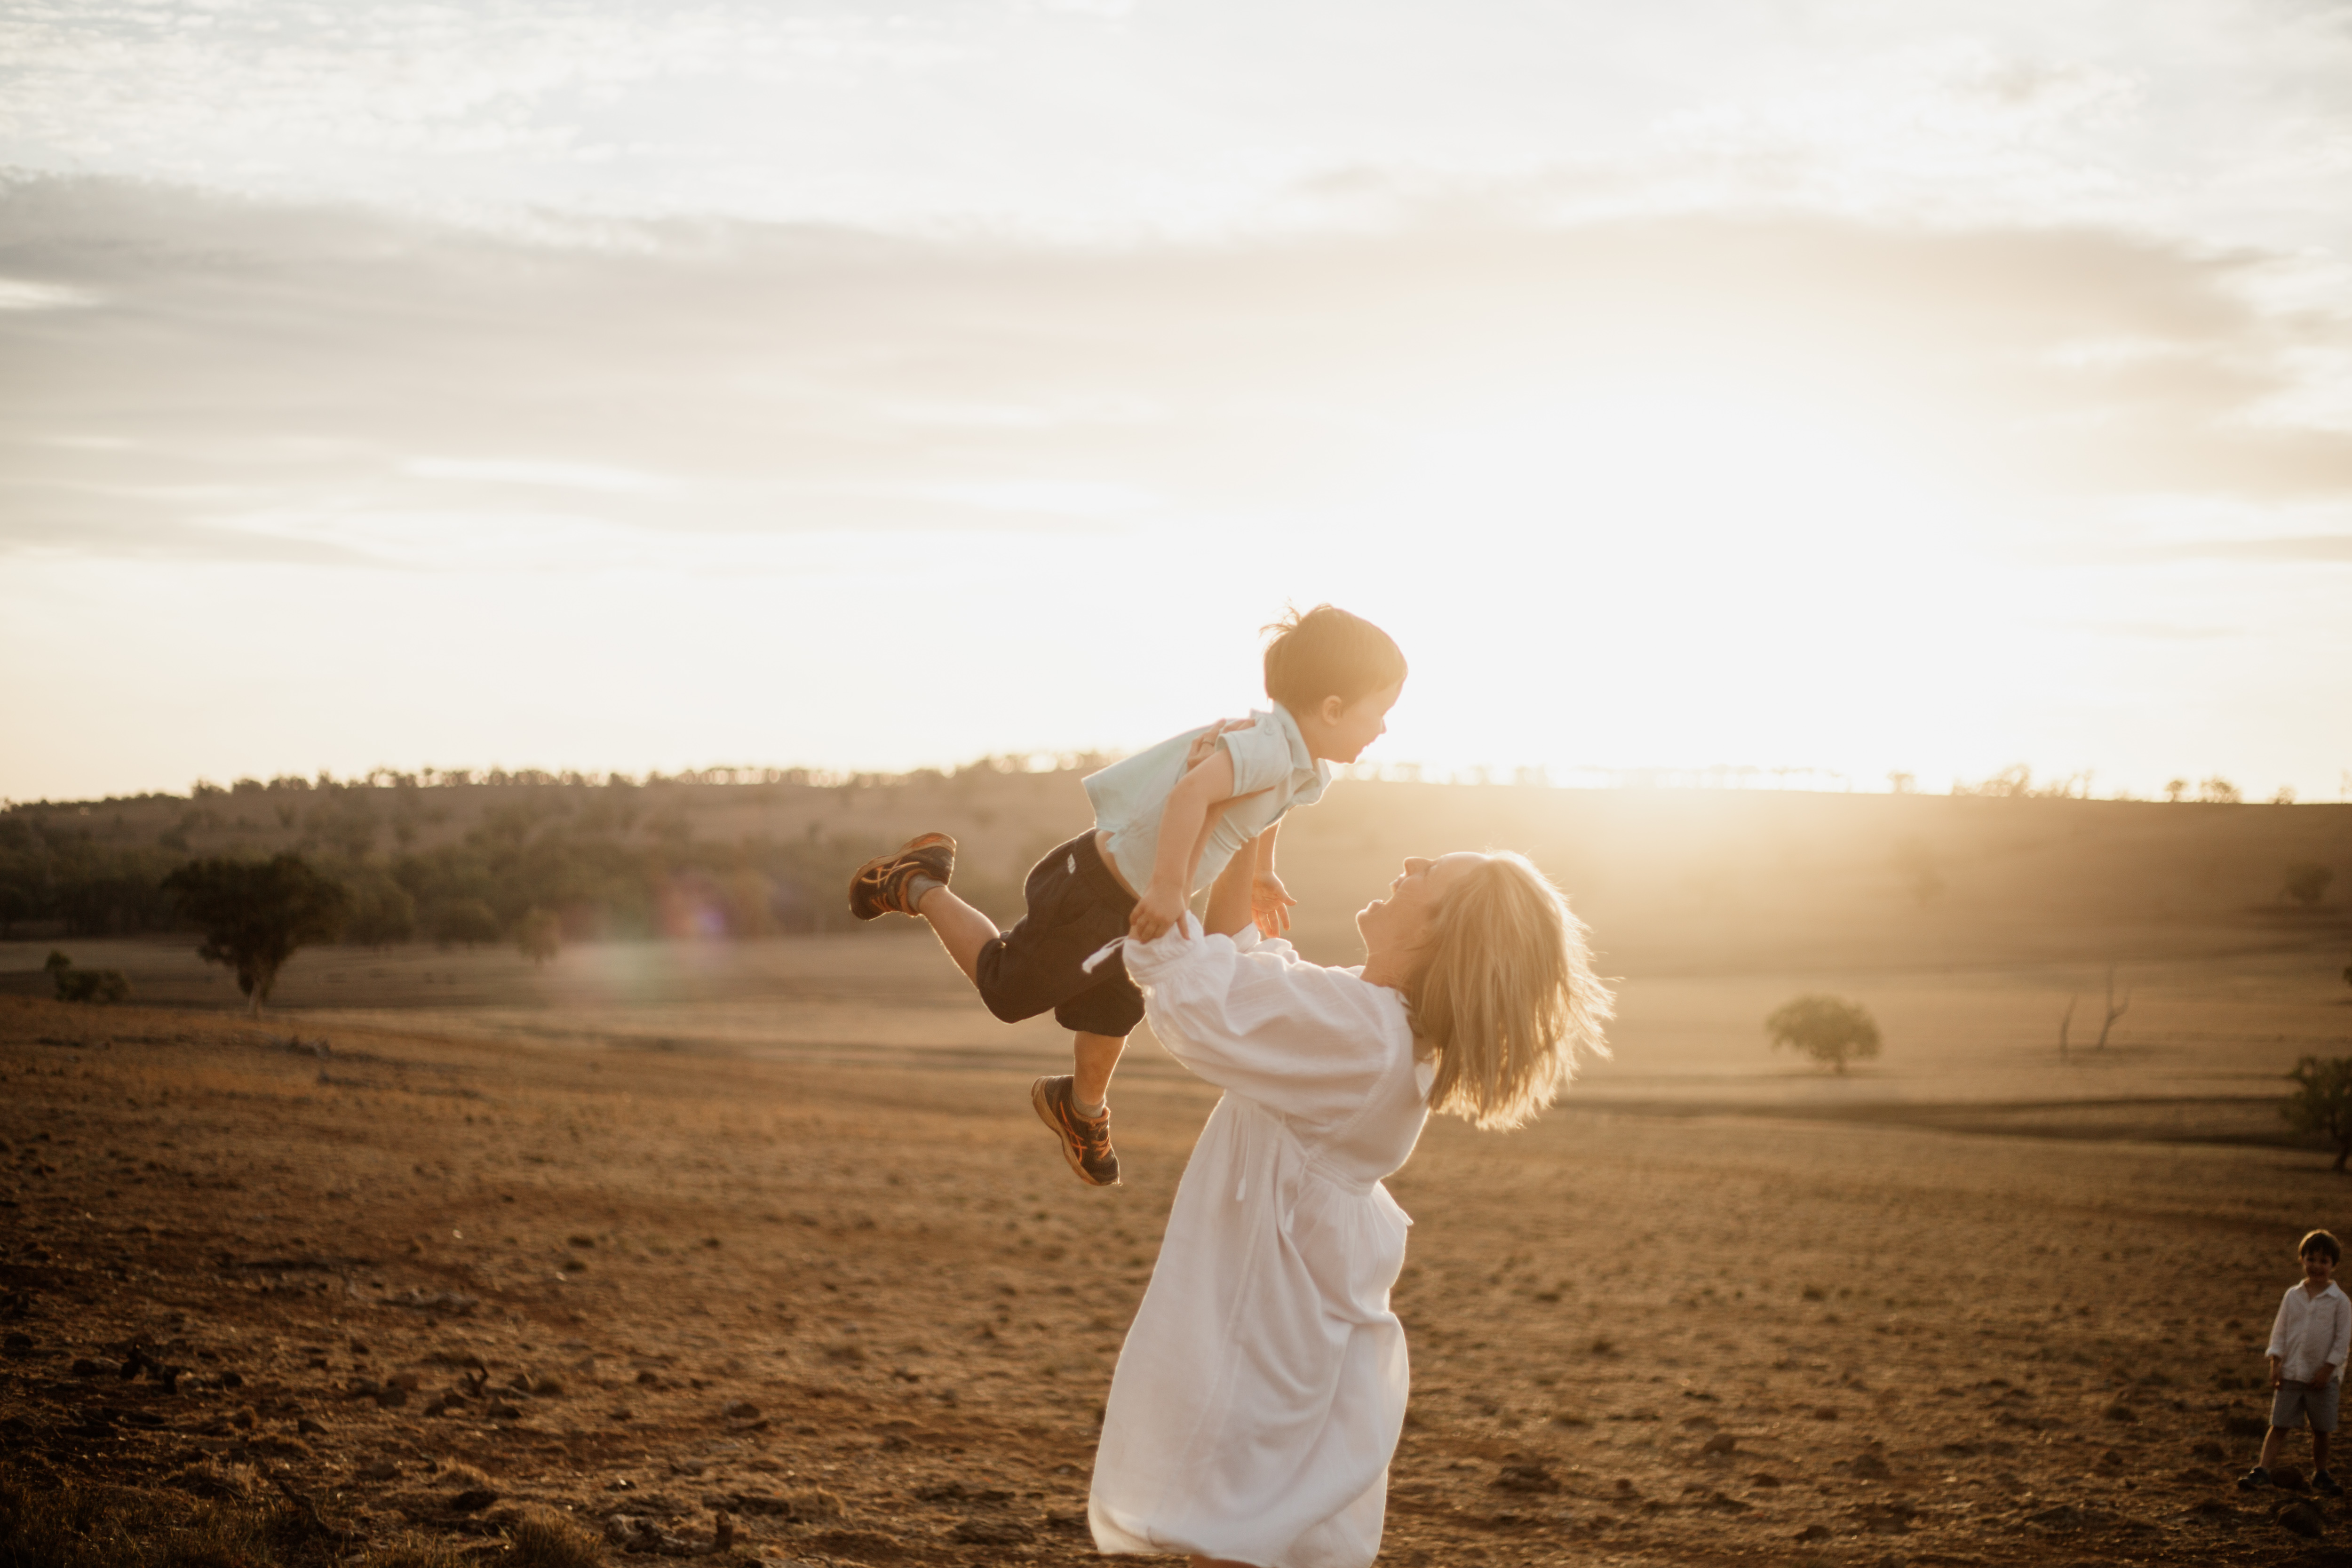 Iso-Advice From a Mother Living In The Country